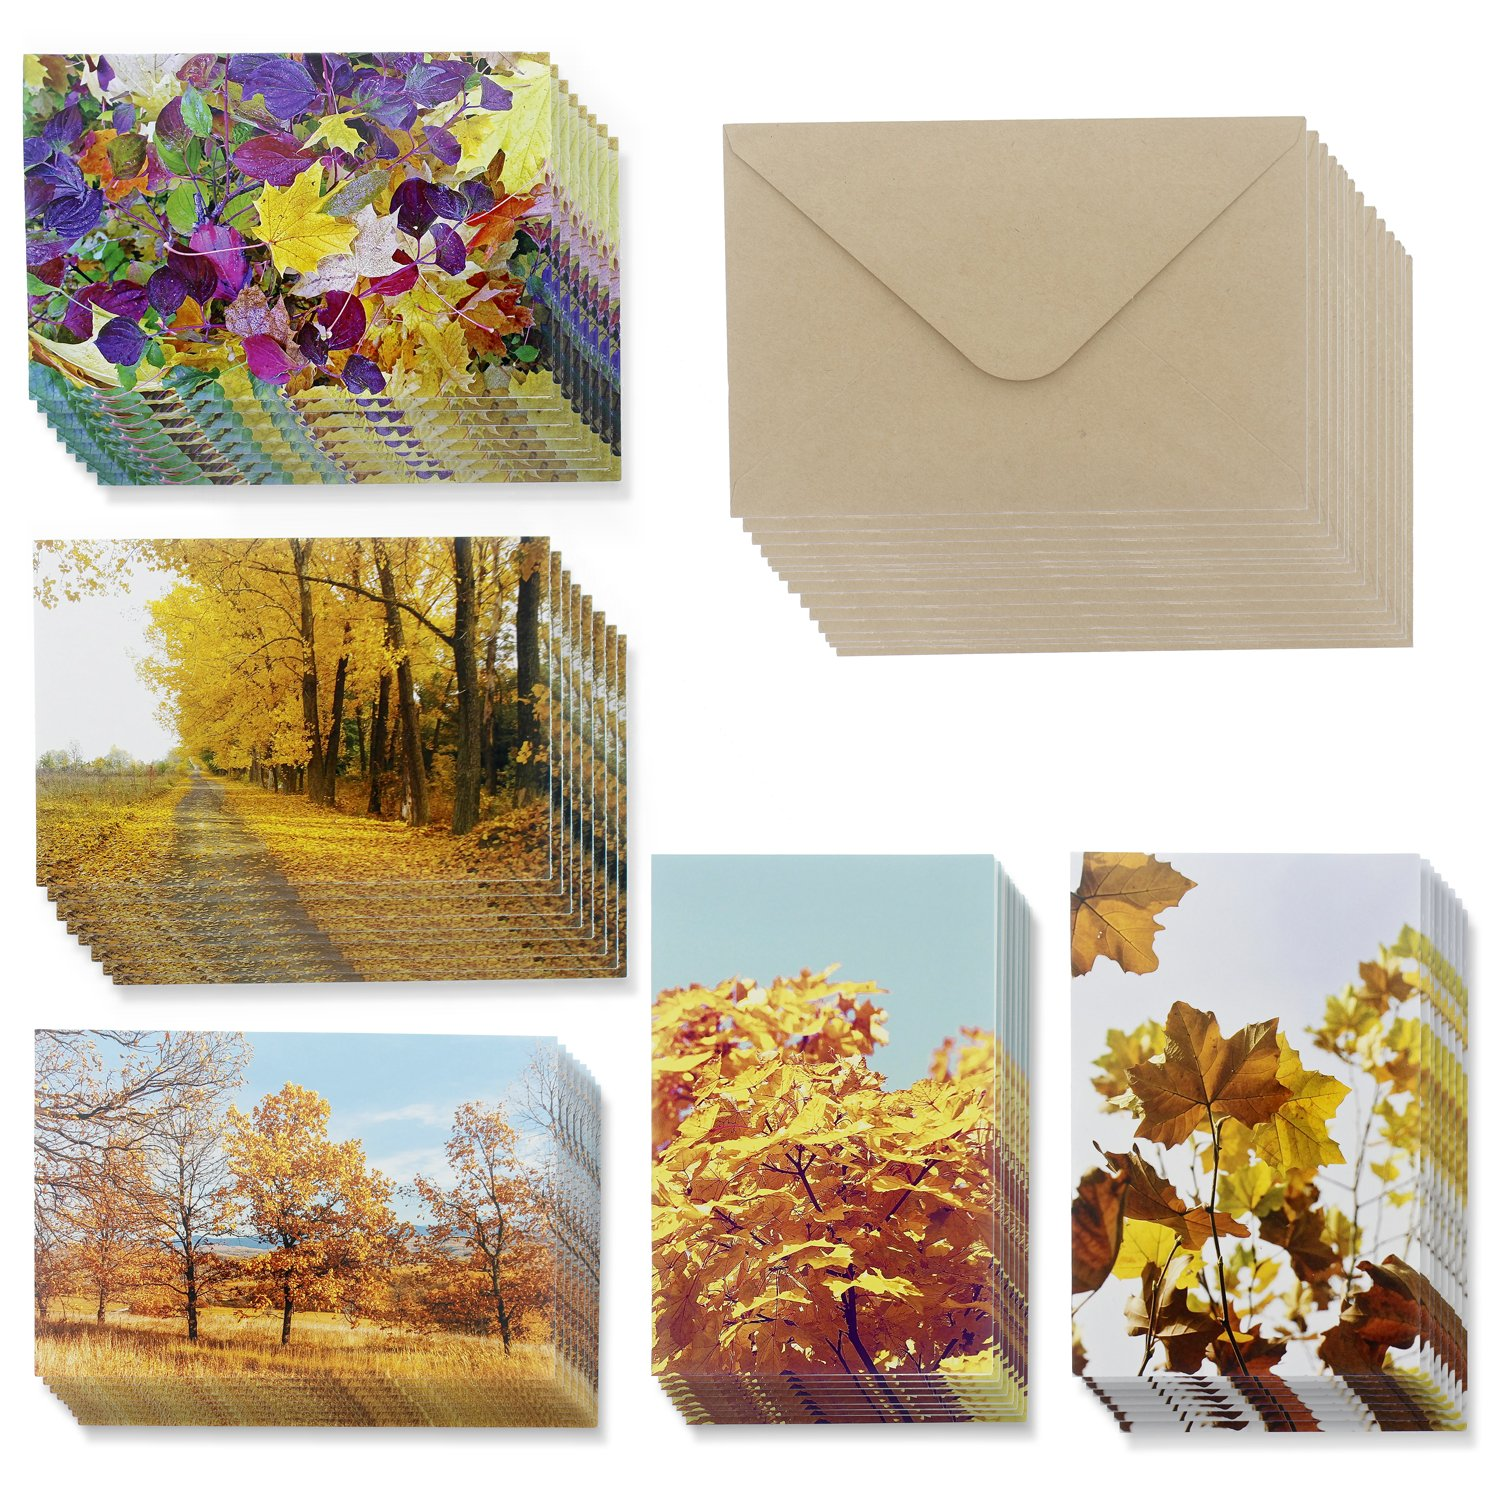 Amazon majestic scenery 36 note cards 6 designs blank 48 pack all occasion assorted blank note cards greeting card bulk box set 6 fall kristyandbryce Image collections